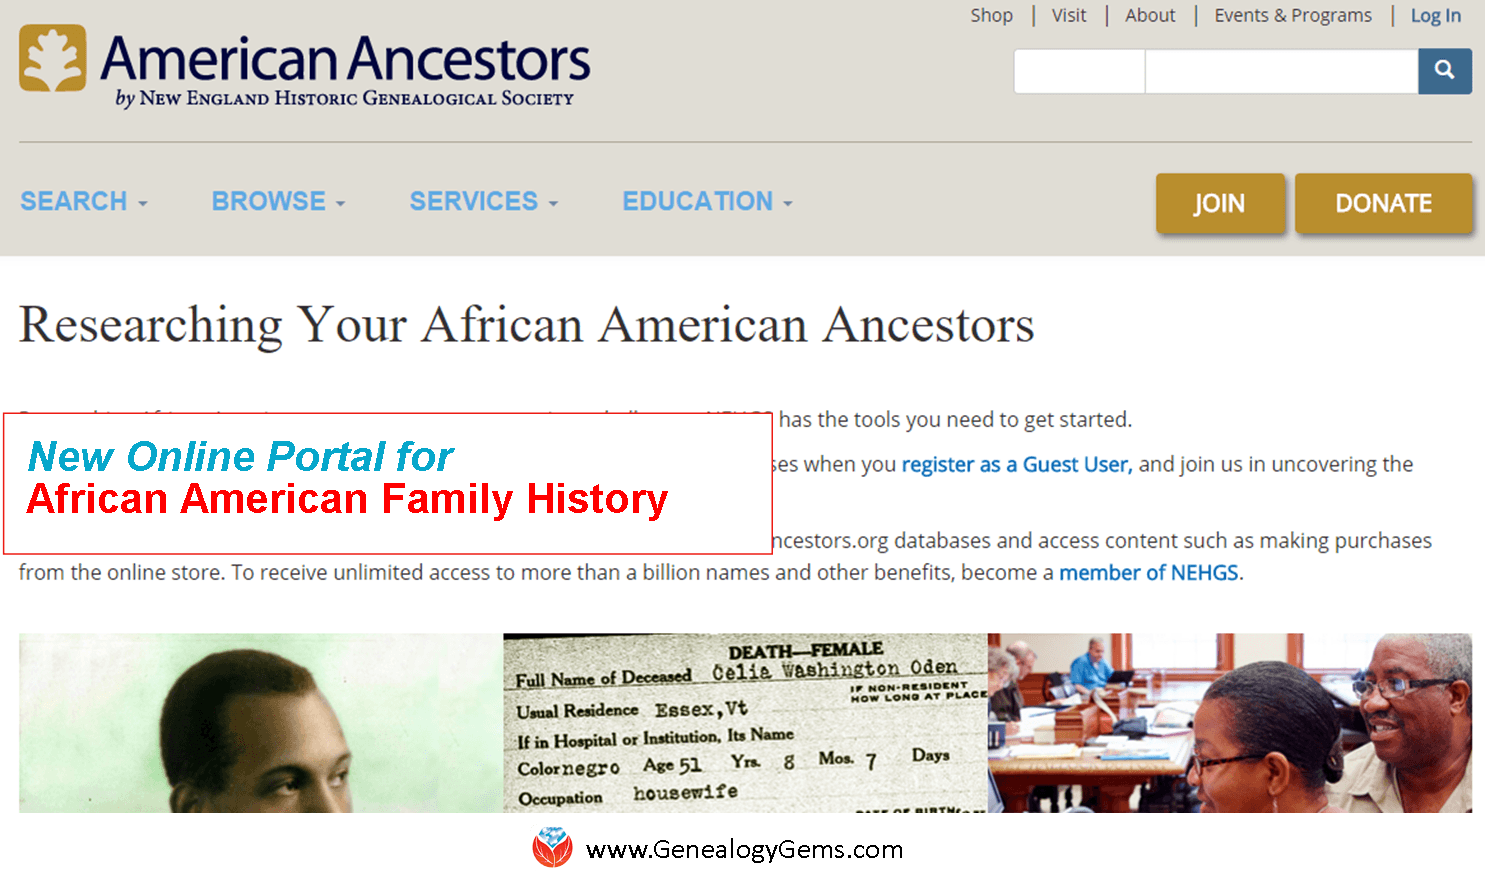 New Resource for African American Family History